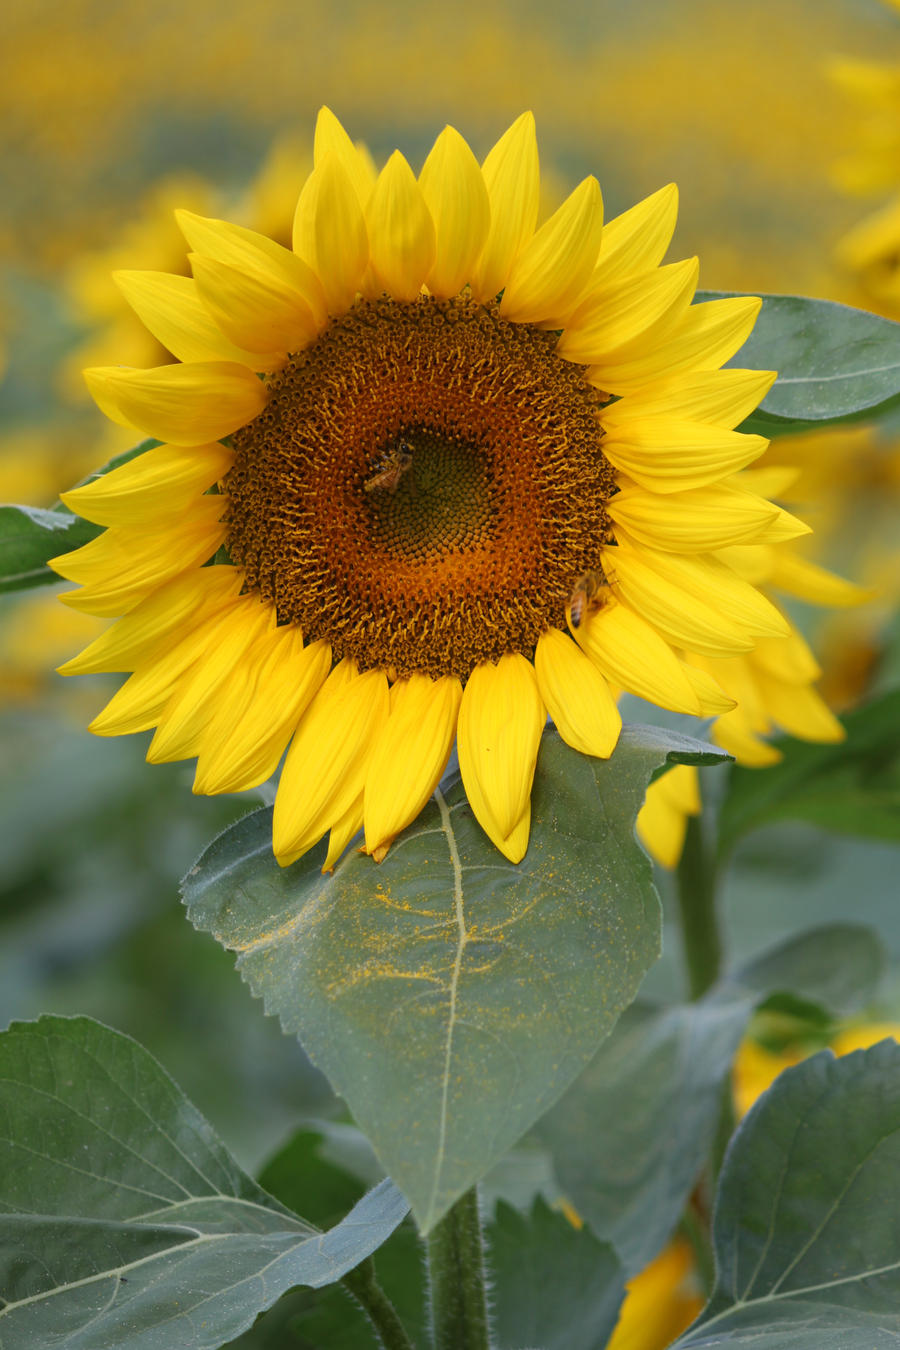 Sunflower 2 by CASPER1830